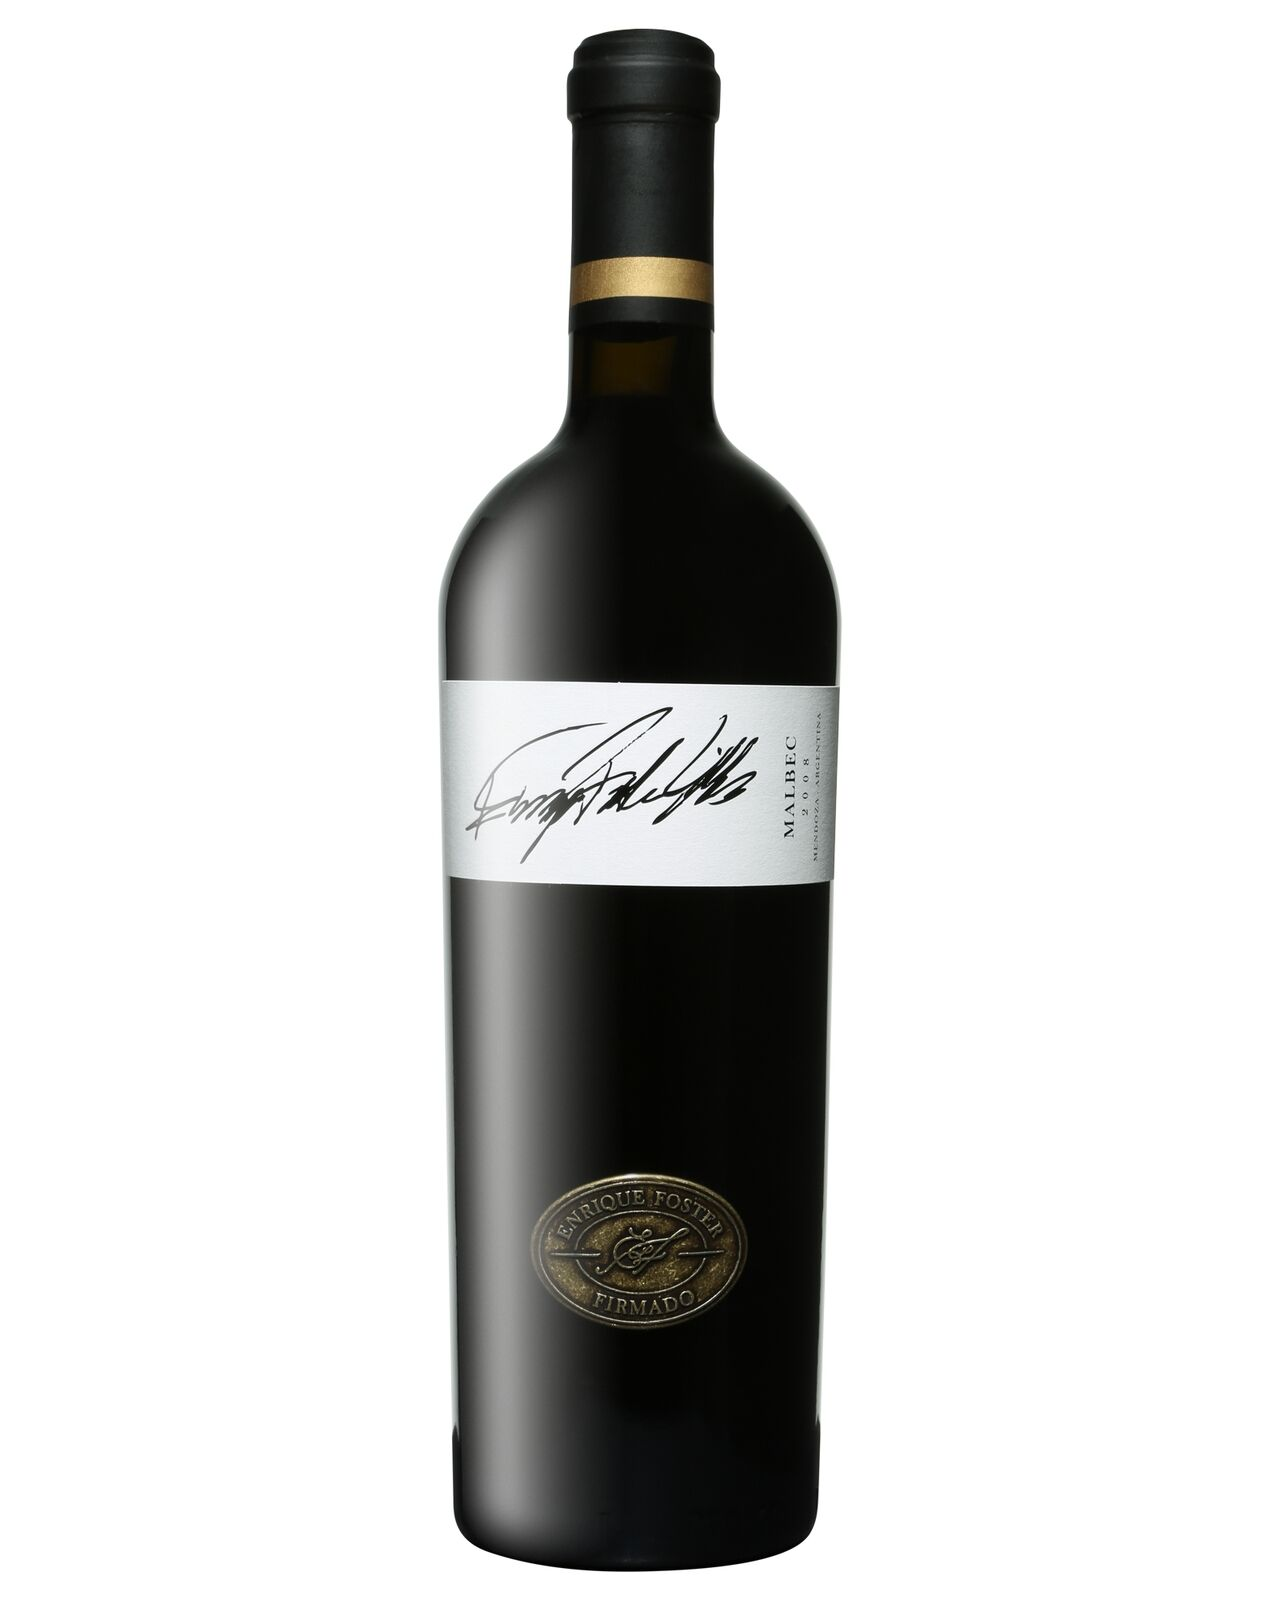 Enrique Foster Firmado Malbec 2008 bottle Dry Red Wine 750mL Mendoza